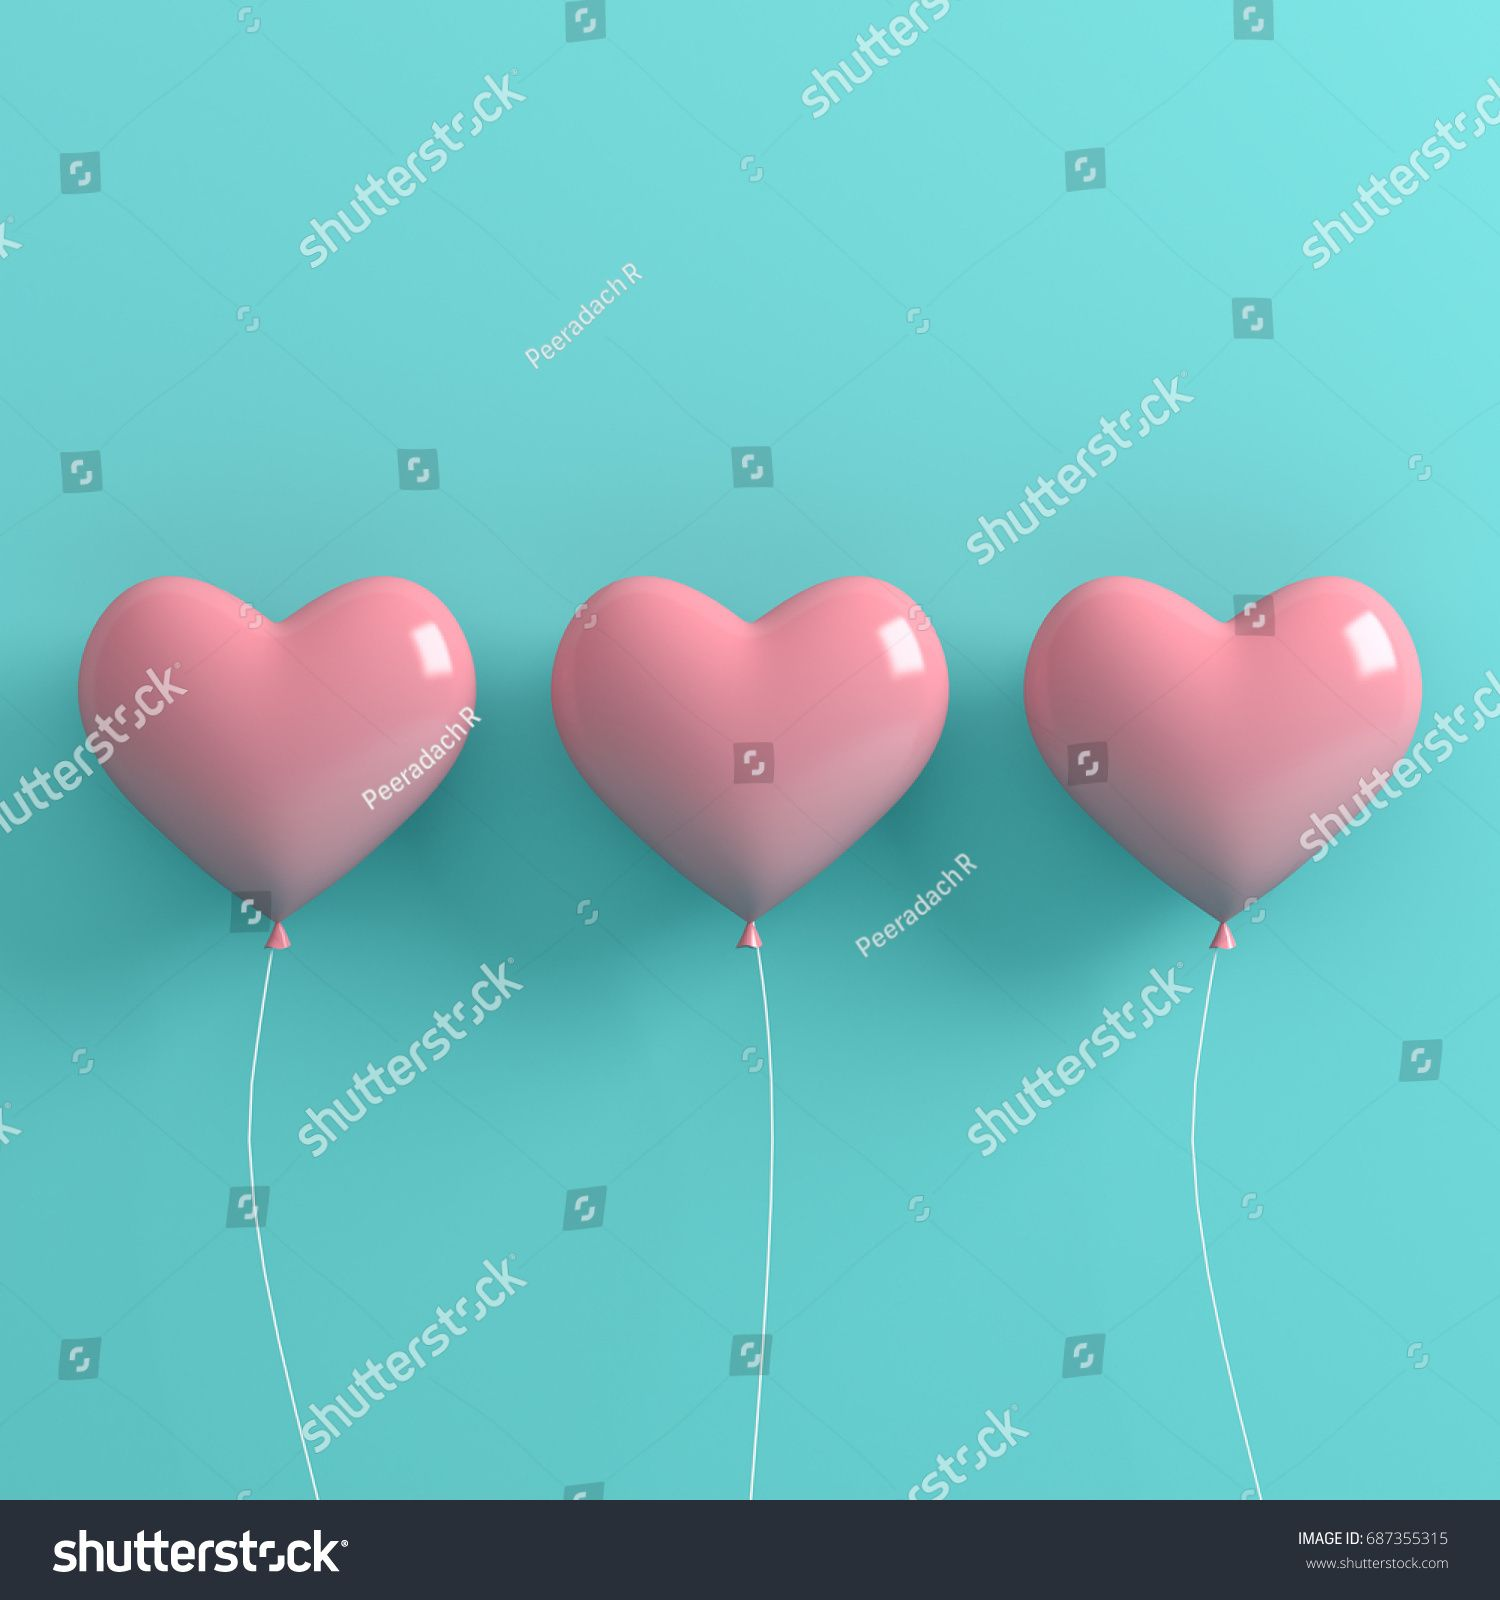 Love Heart Balloon Concept On Pastel Pink And Light Blue Background For Copy Space Minimal